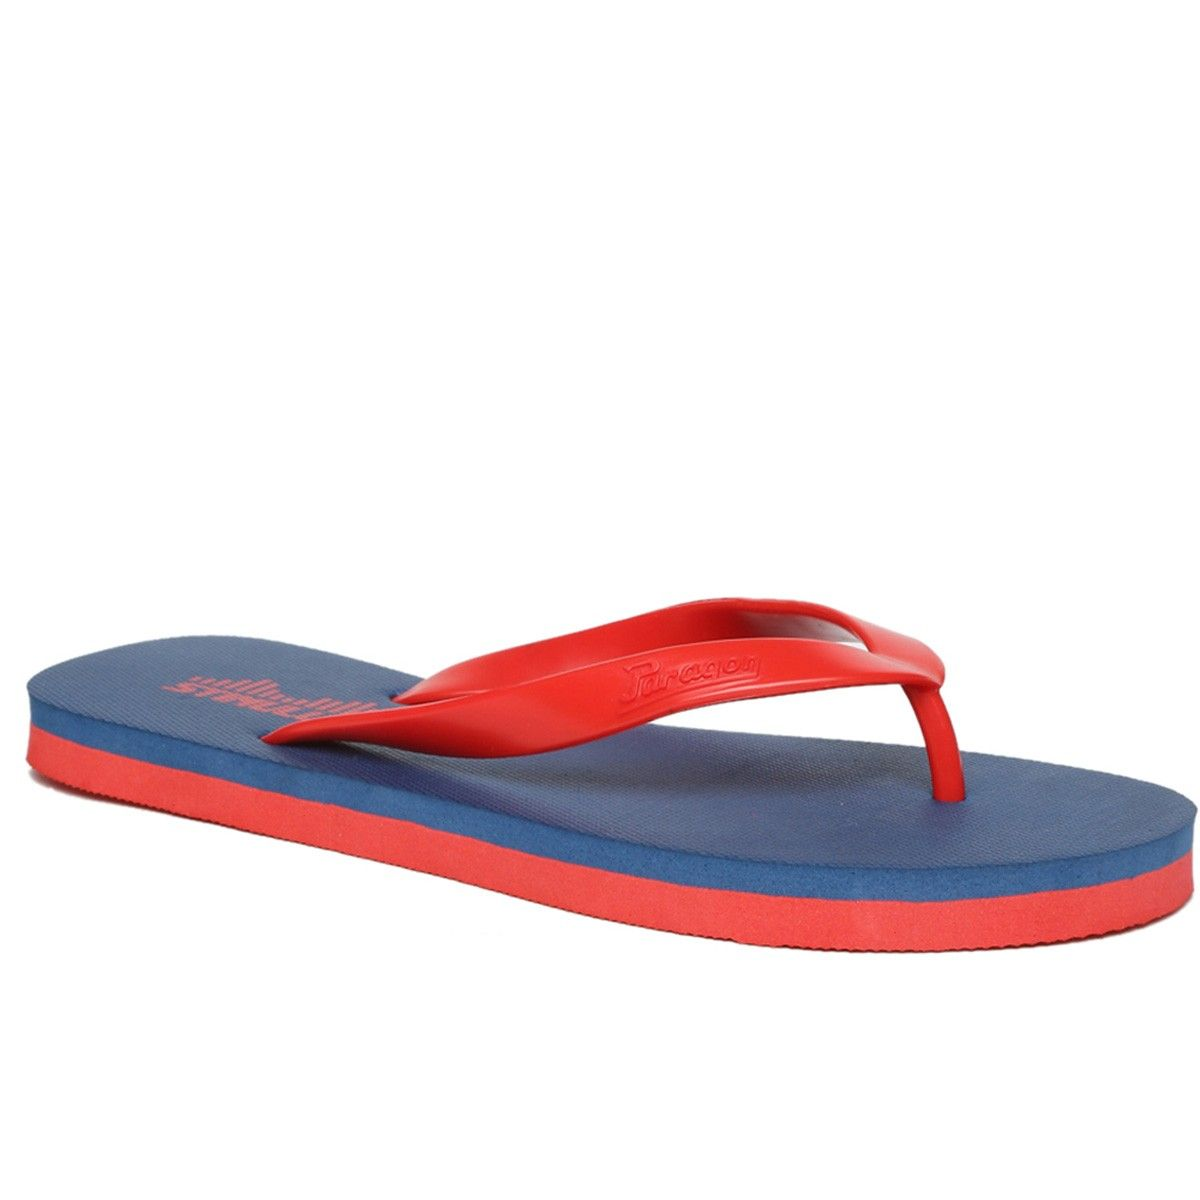 165d340c13c8 Buy Paragon Stimulus 69 Men S Blue Flip Flops Online at Low prices in India  on Winsant